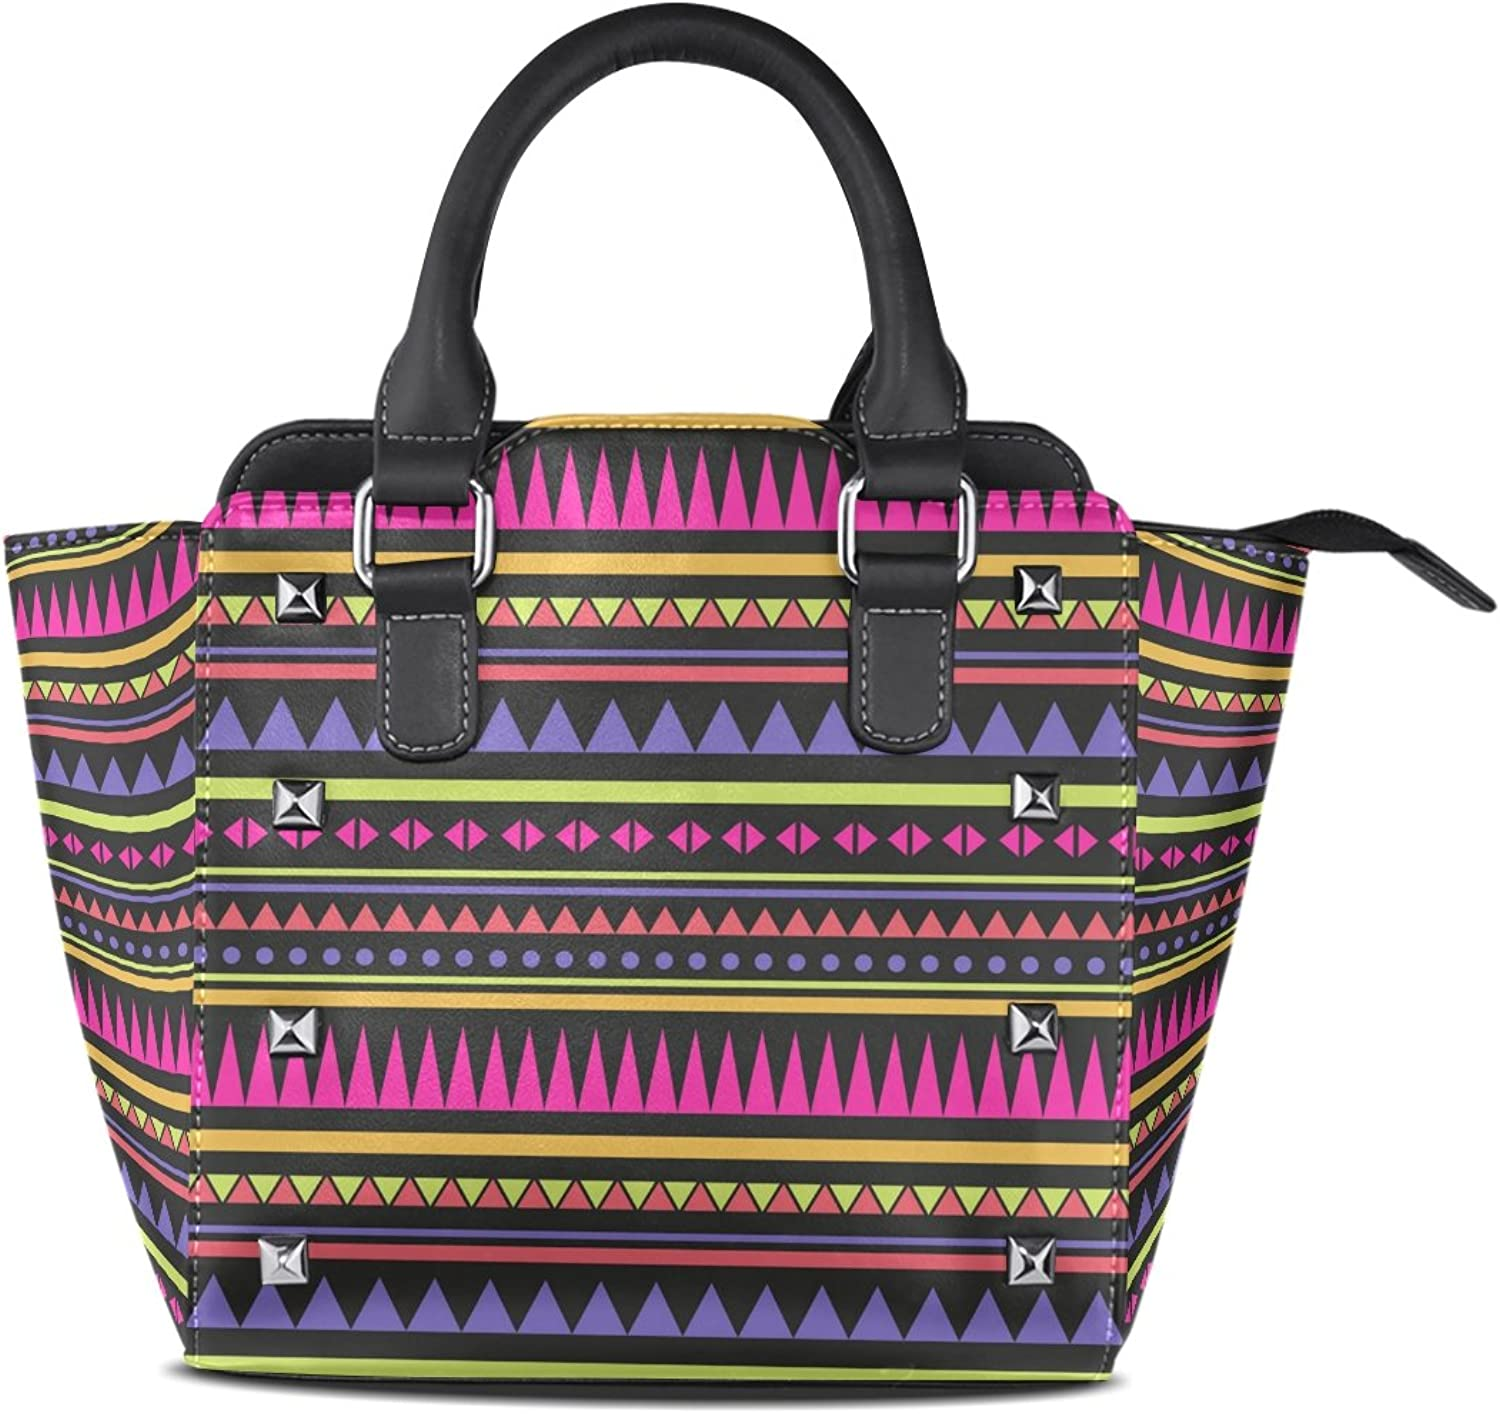 My Little Nest Women's Top Handle Satchel Handbag colorful Bohemian Style Tribal Stripes Pattern Ladies PU Leather Shoulder Bag Crossbody Bag